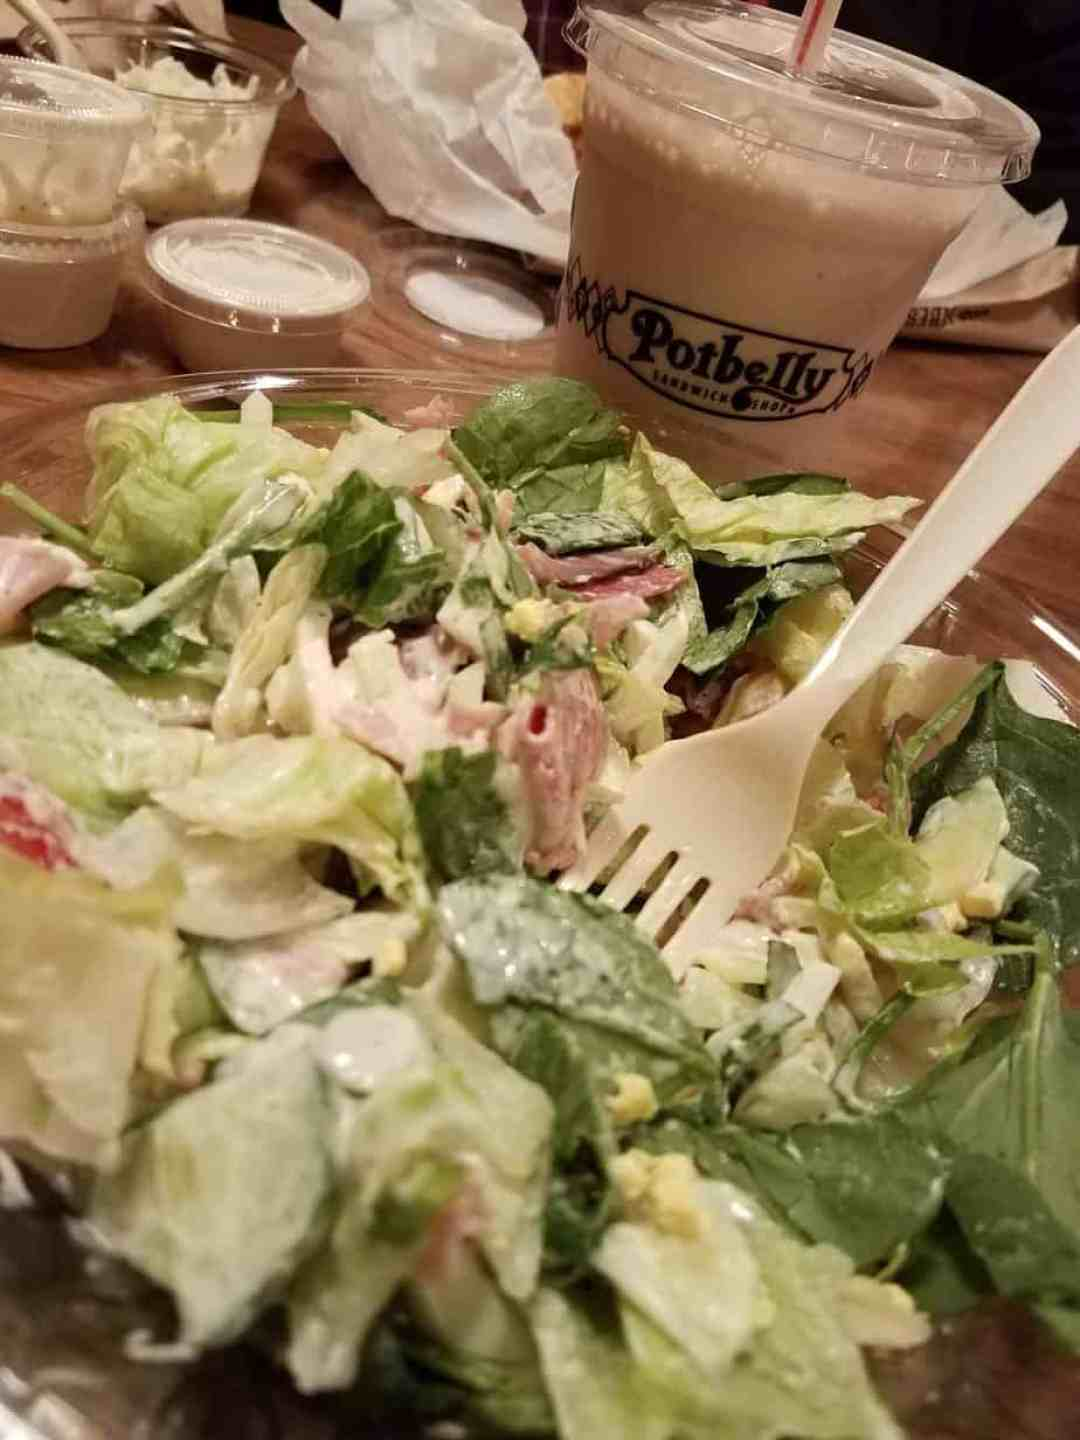 Potbelly Sandwich Shop Now Has Potbelly Perks